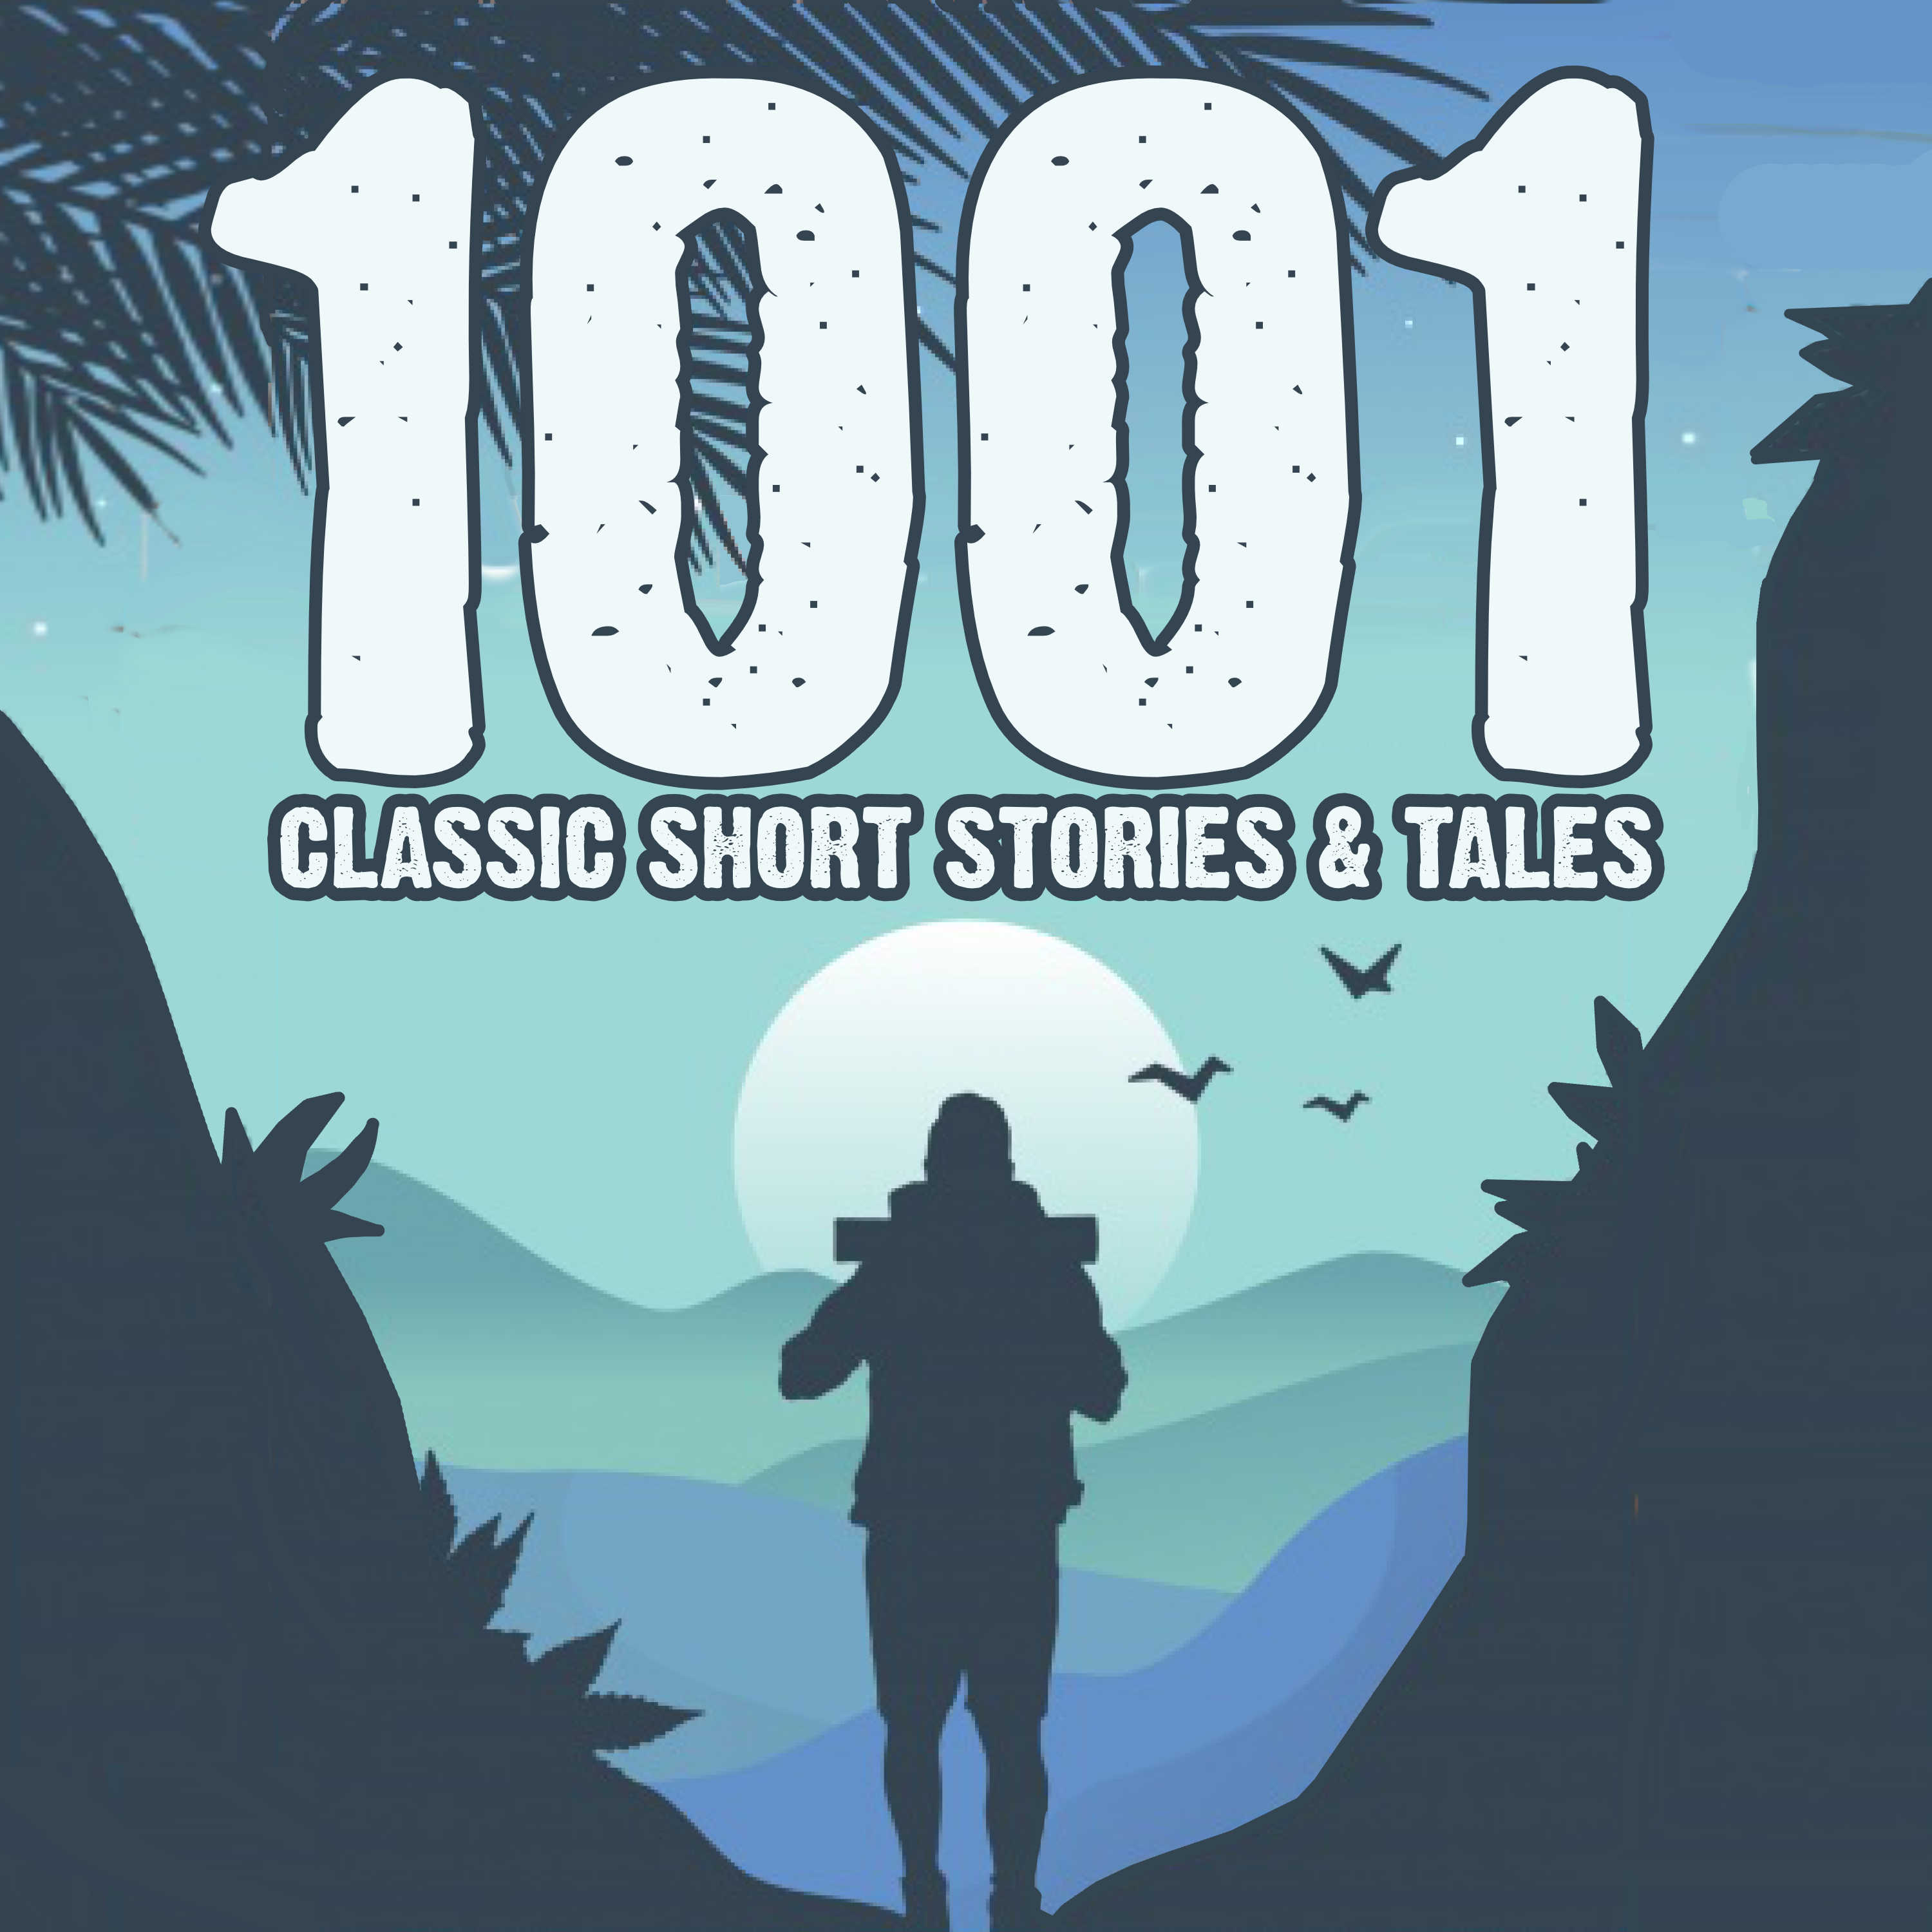 1001 Classic Short Stories & Tales Podcast